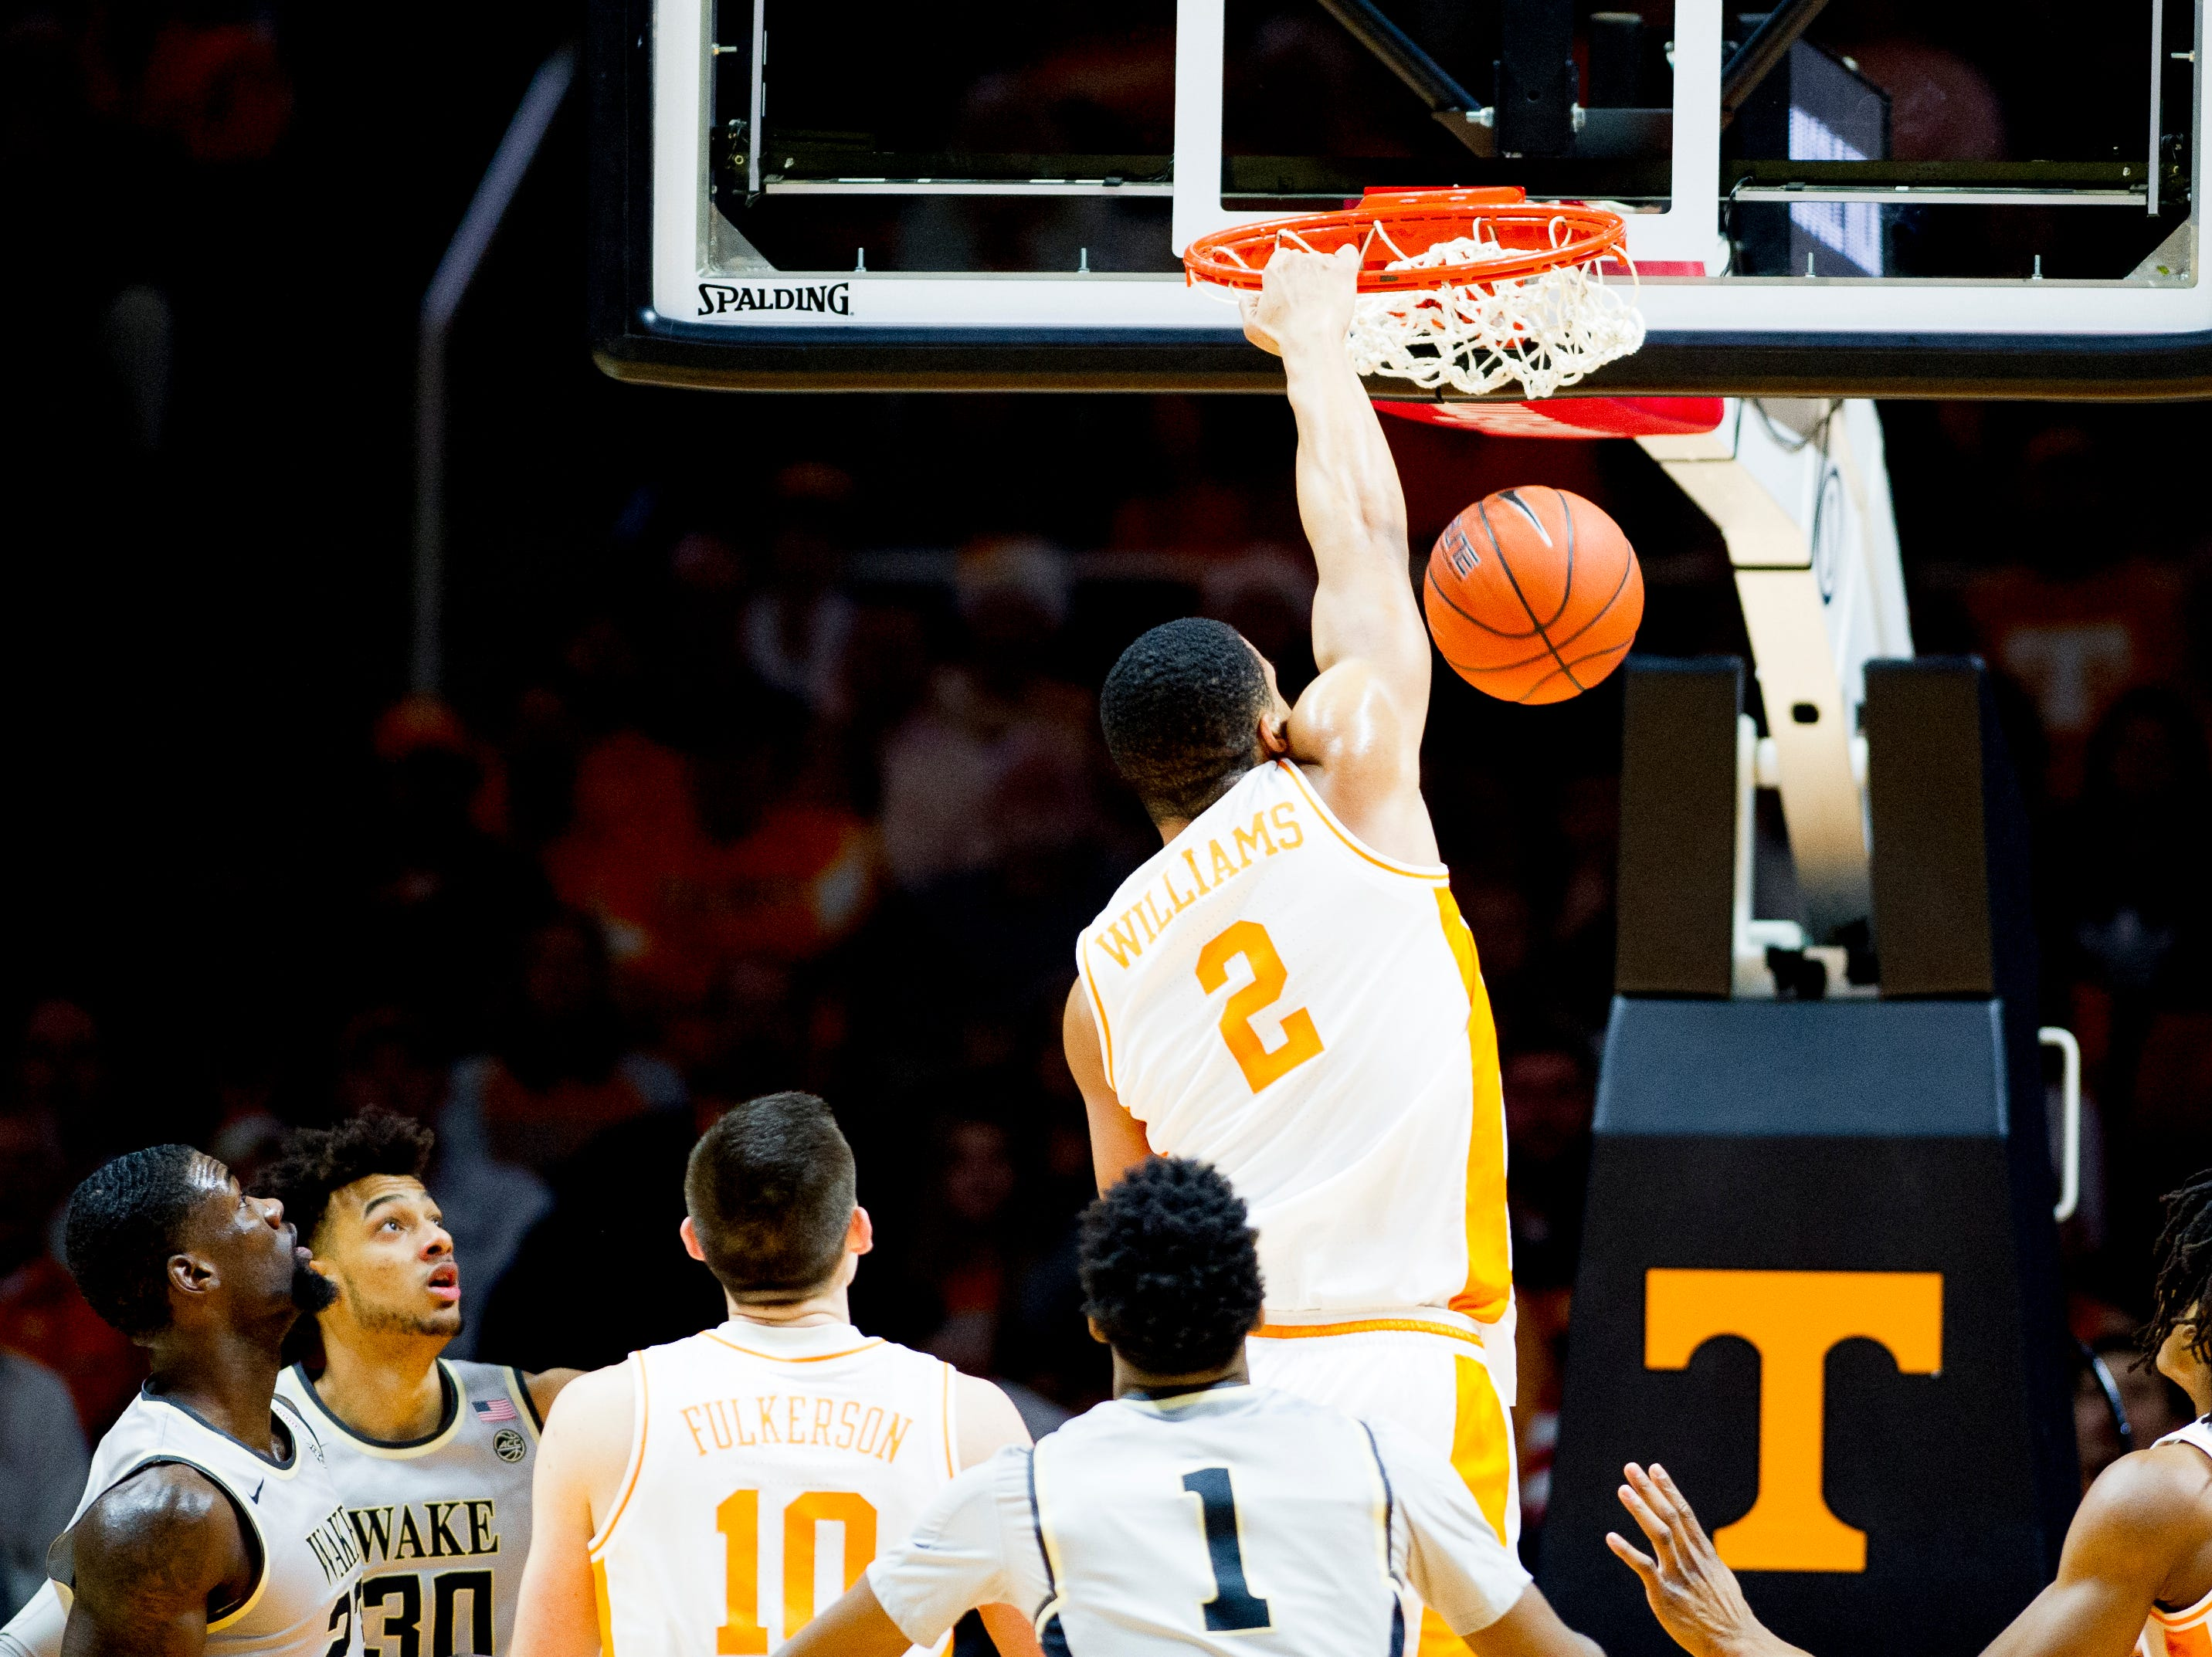 Tennessee forward Grant Williams (2) dunks during a game between Tennessee and Wake Forest at Thompson-Boling Arena in Knoxville, Tennessee on Saturday, December 22, 2018.